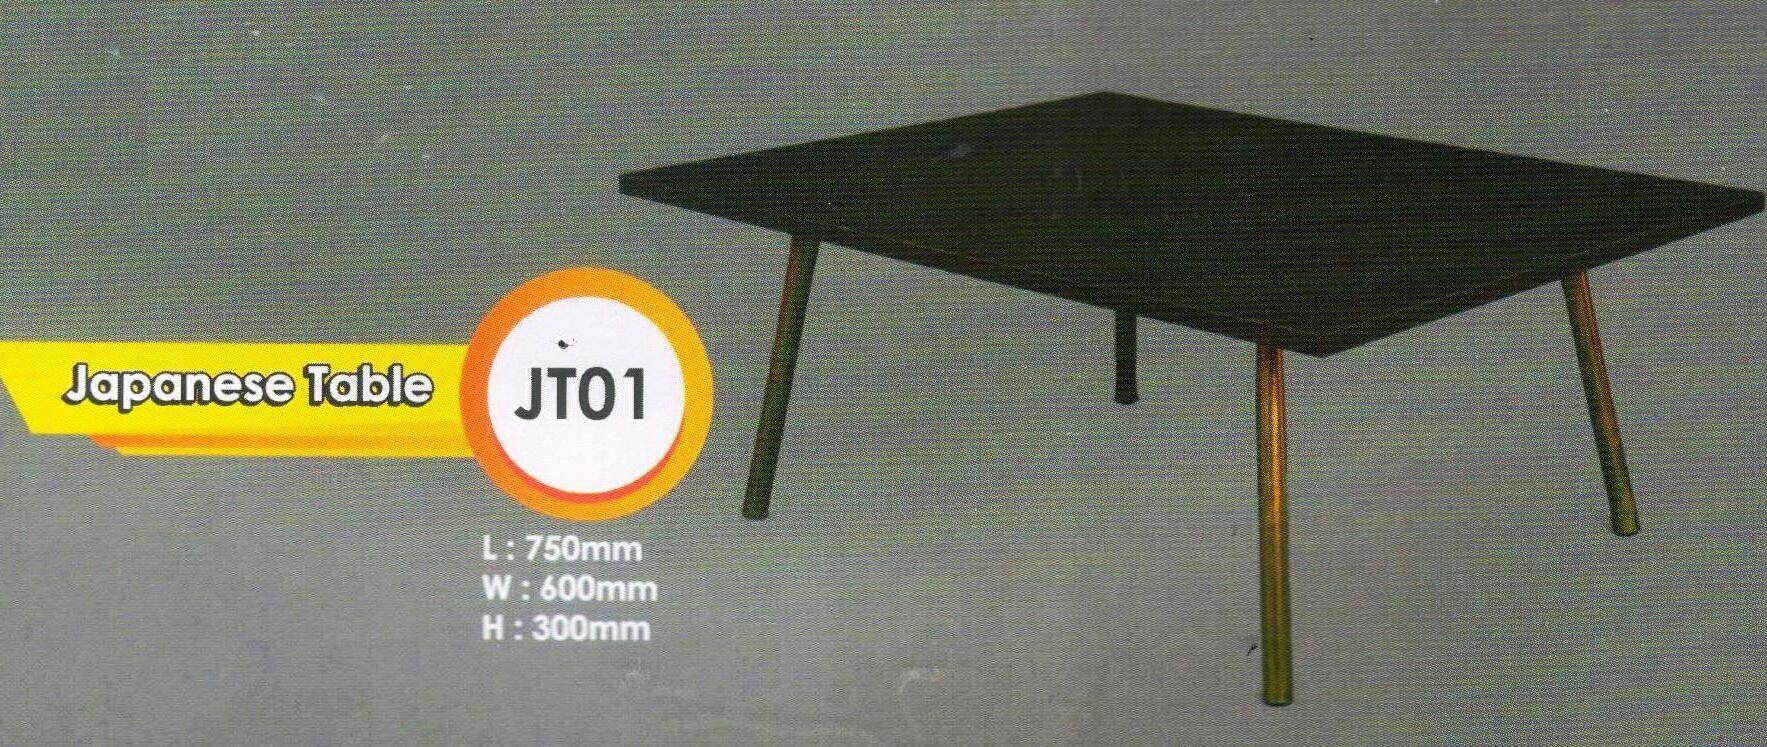 Japanese table JT01